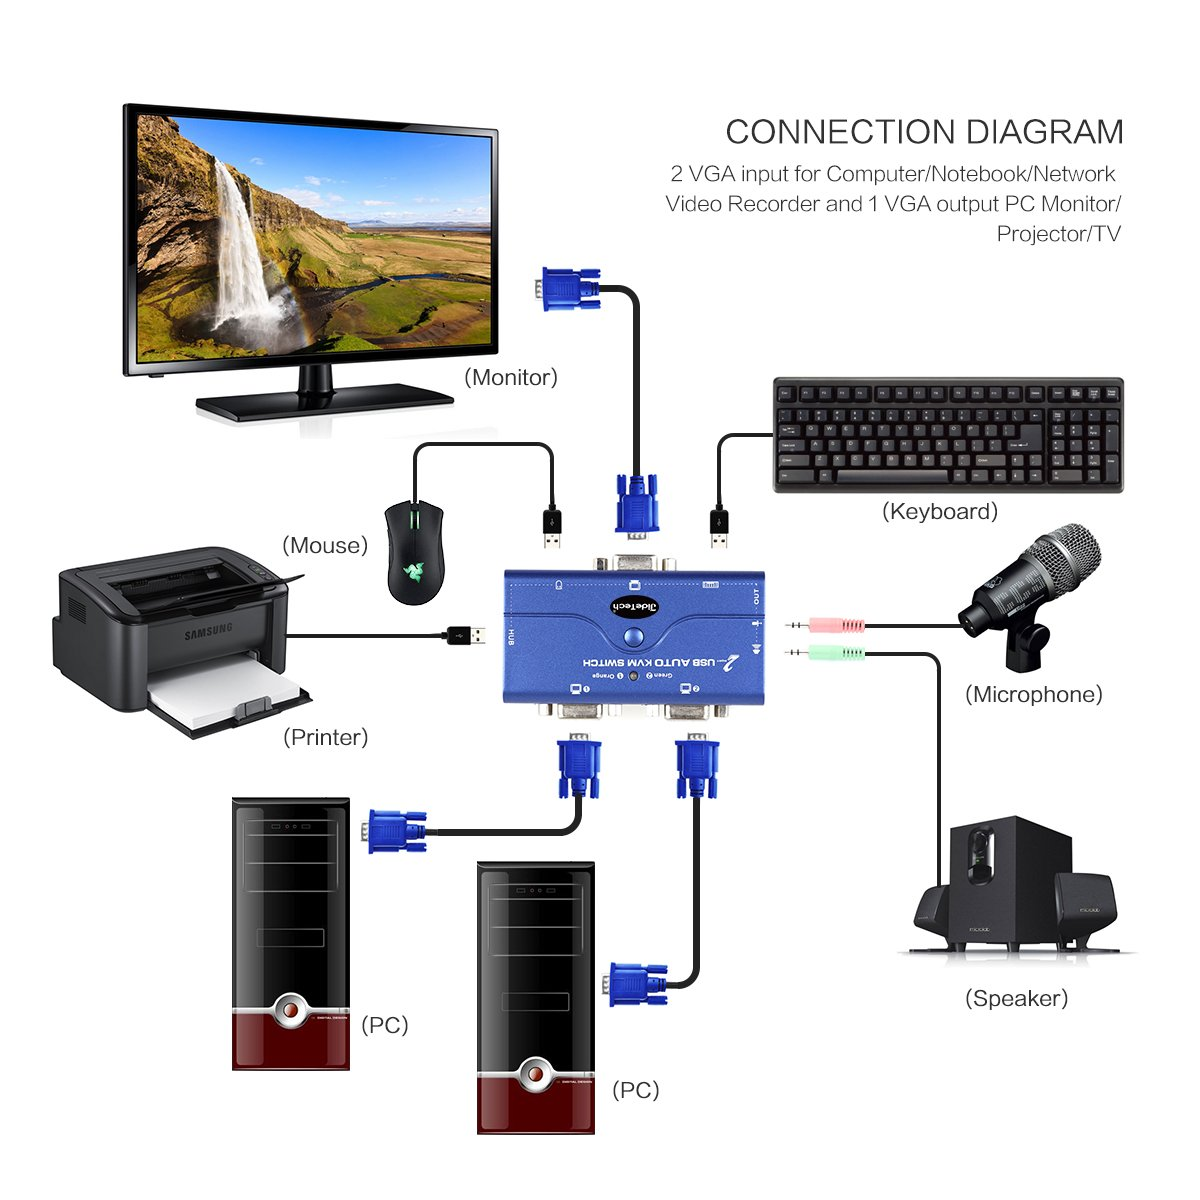 Computer Diagram Connection For Two 2 Port Vga Auto Kvm Switch With Usb 20 Hubresolution Up To 2048x1536 Pc Monitor Keyboard Mouse Control Computers Accessories